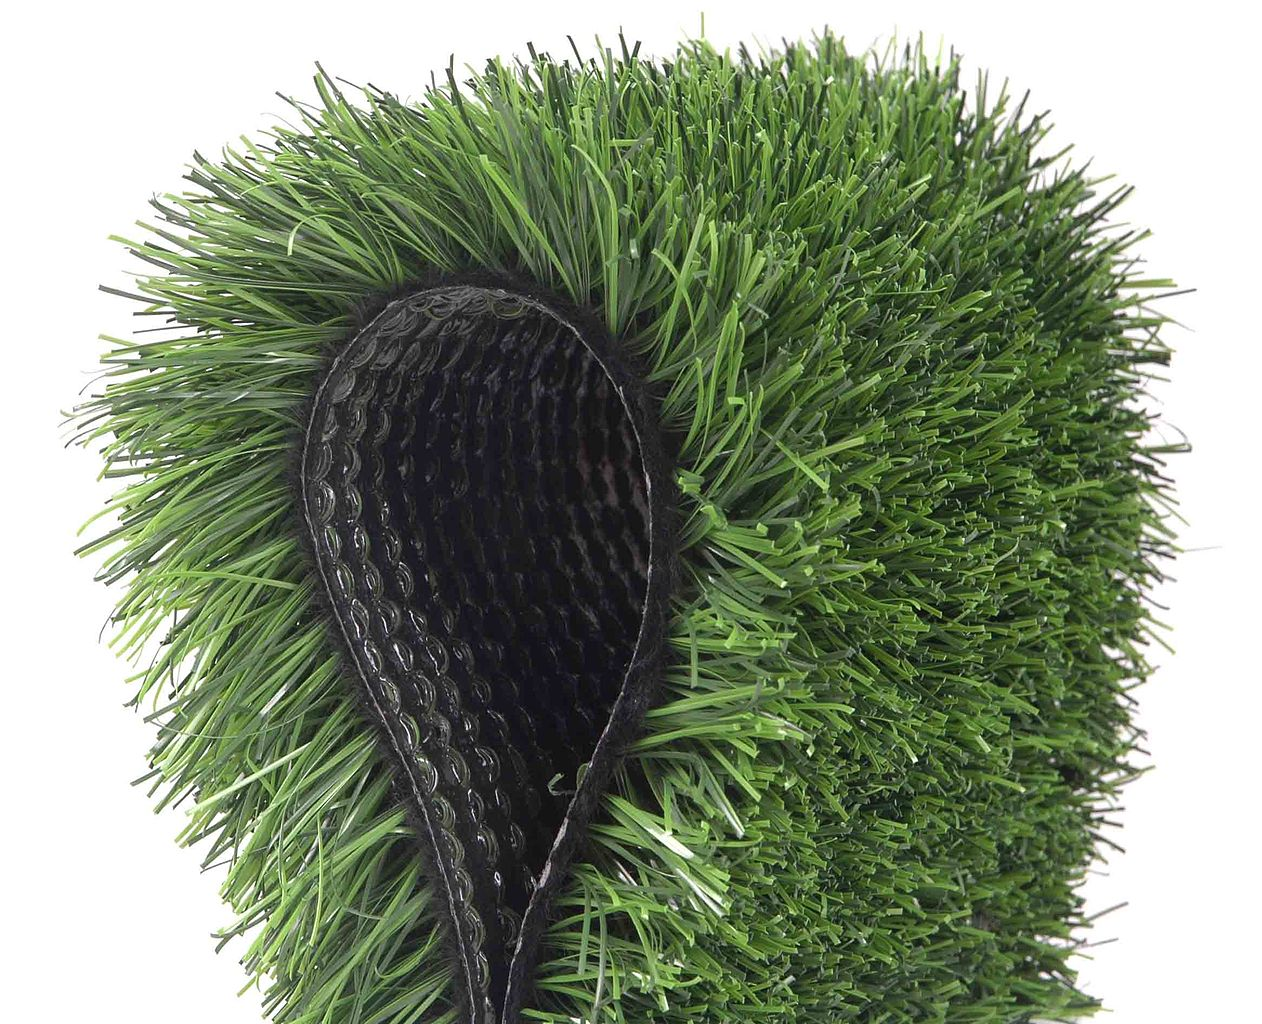 Artificial turf pros and cons - How Artificial Turf Is Recycled